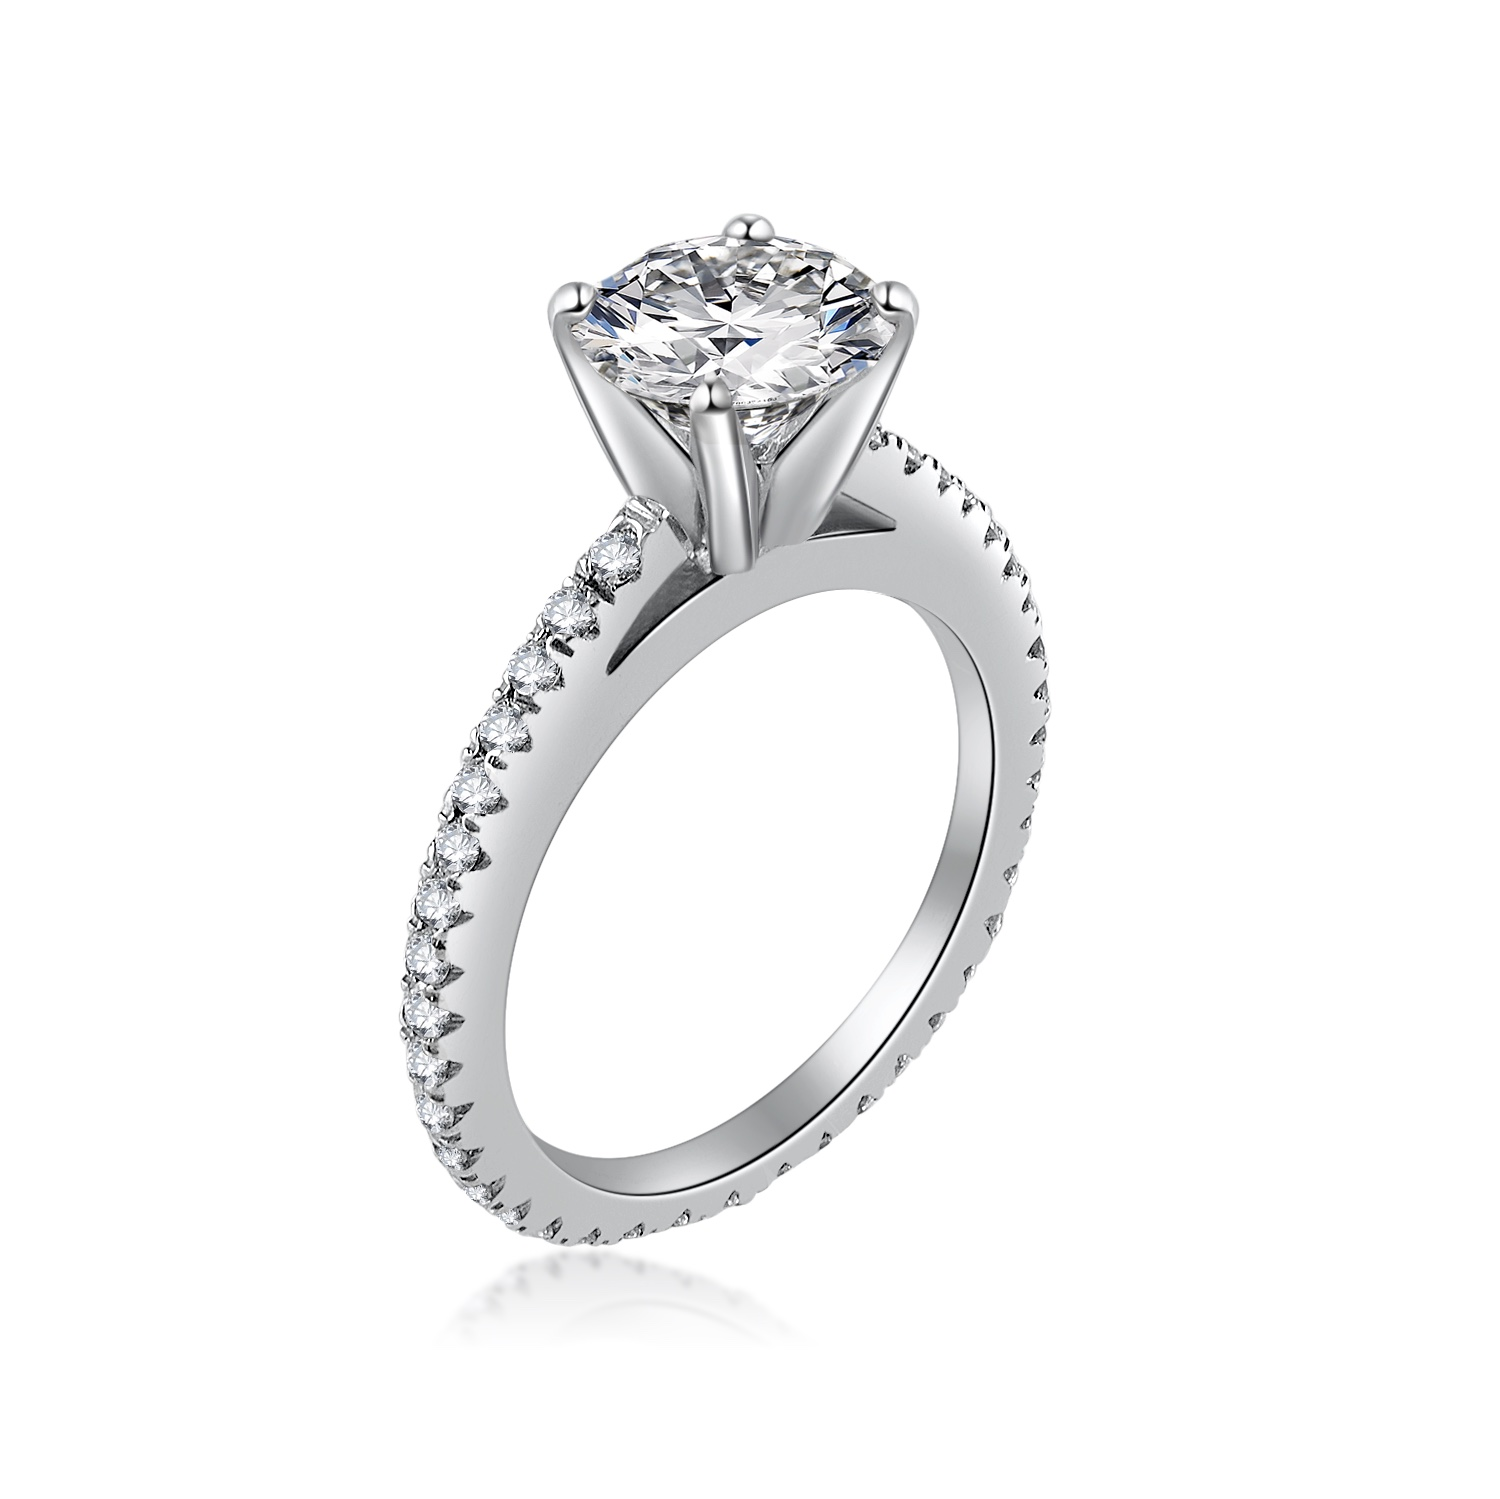 jaffe eternity princess house diamond product a round engagement anniversary ring alexis metropolitan band and bands